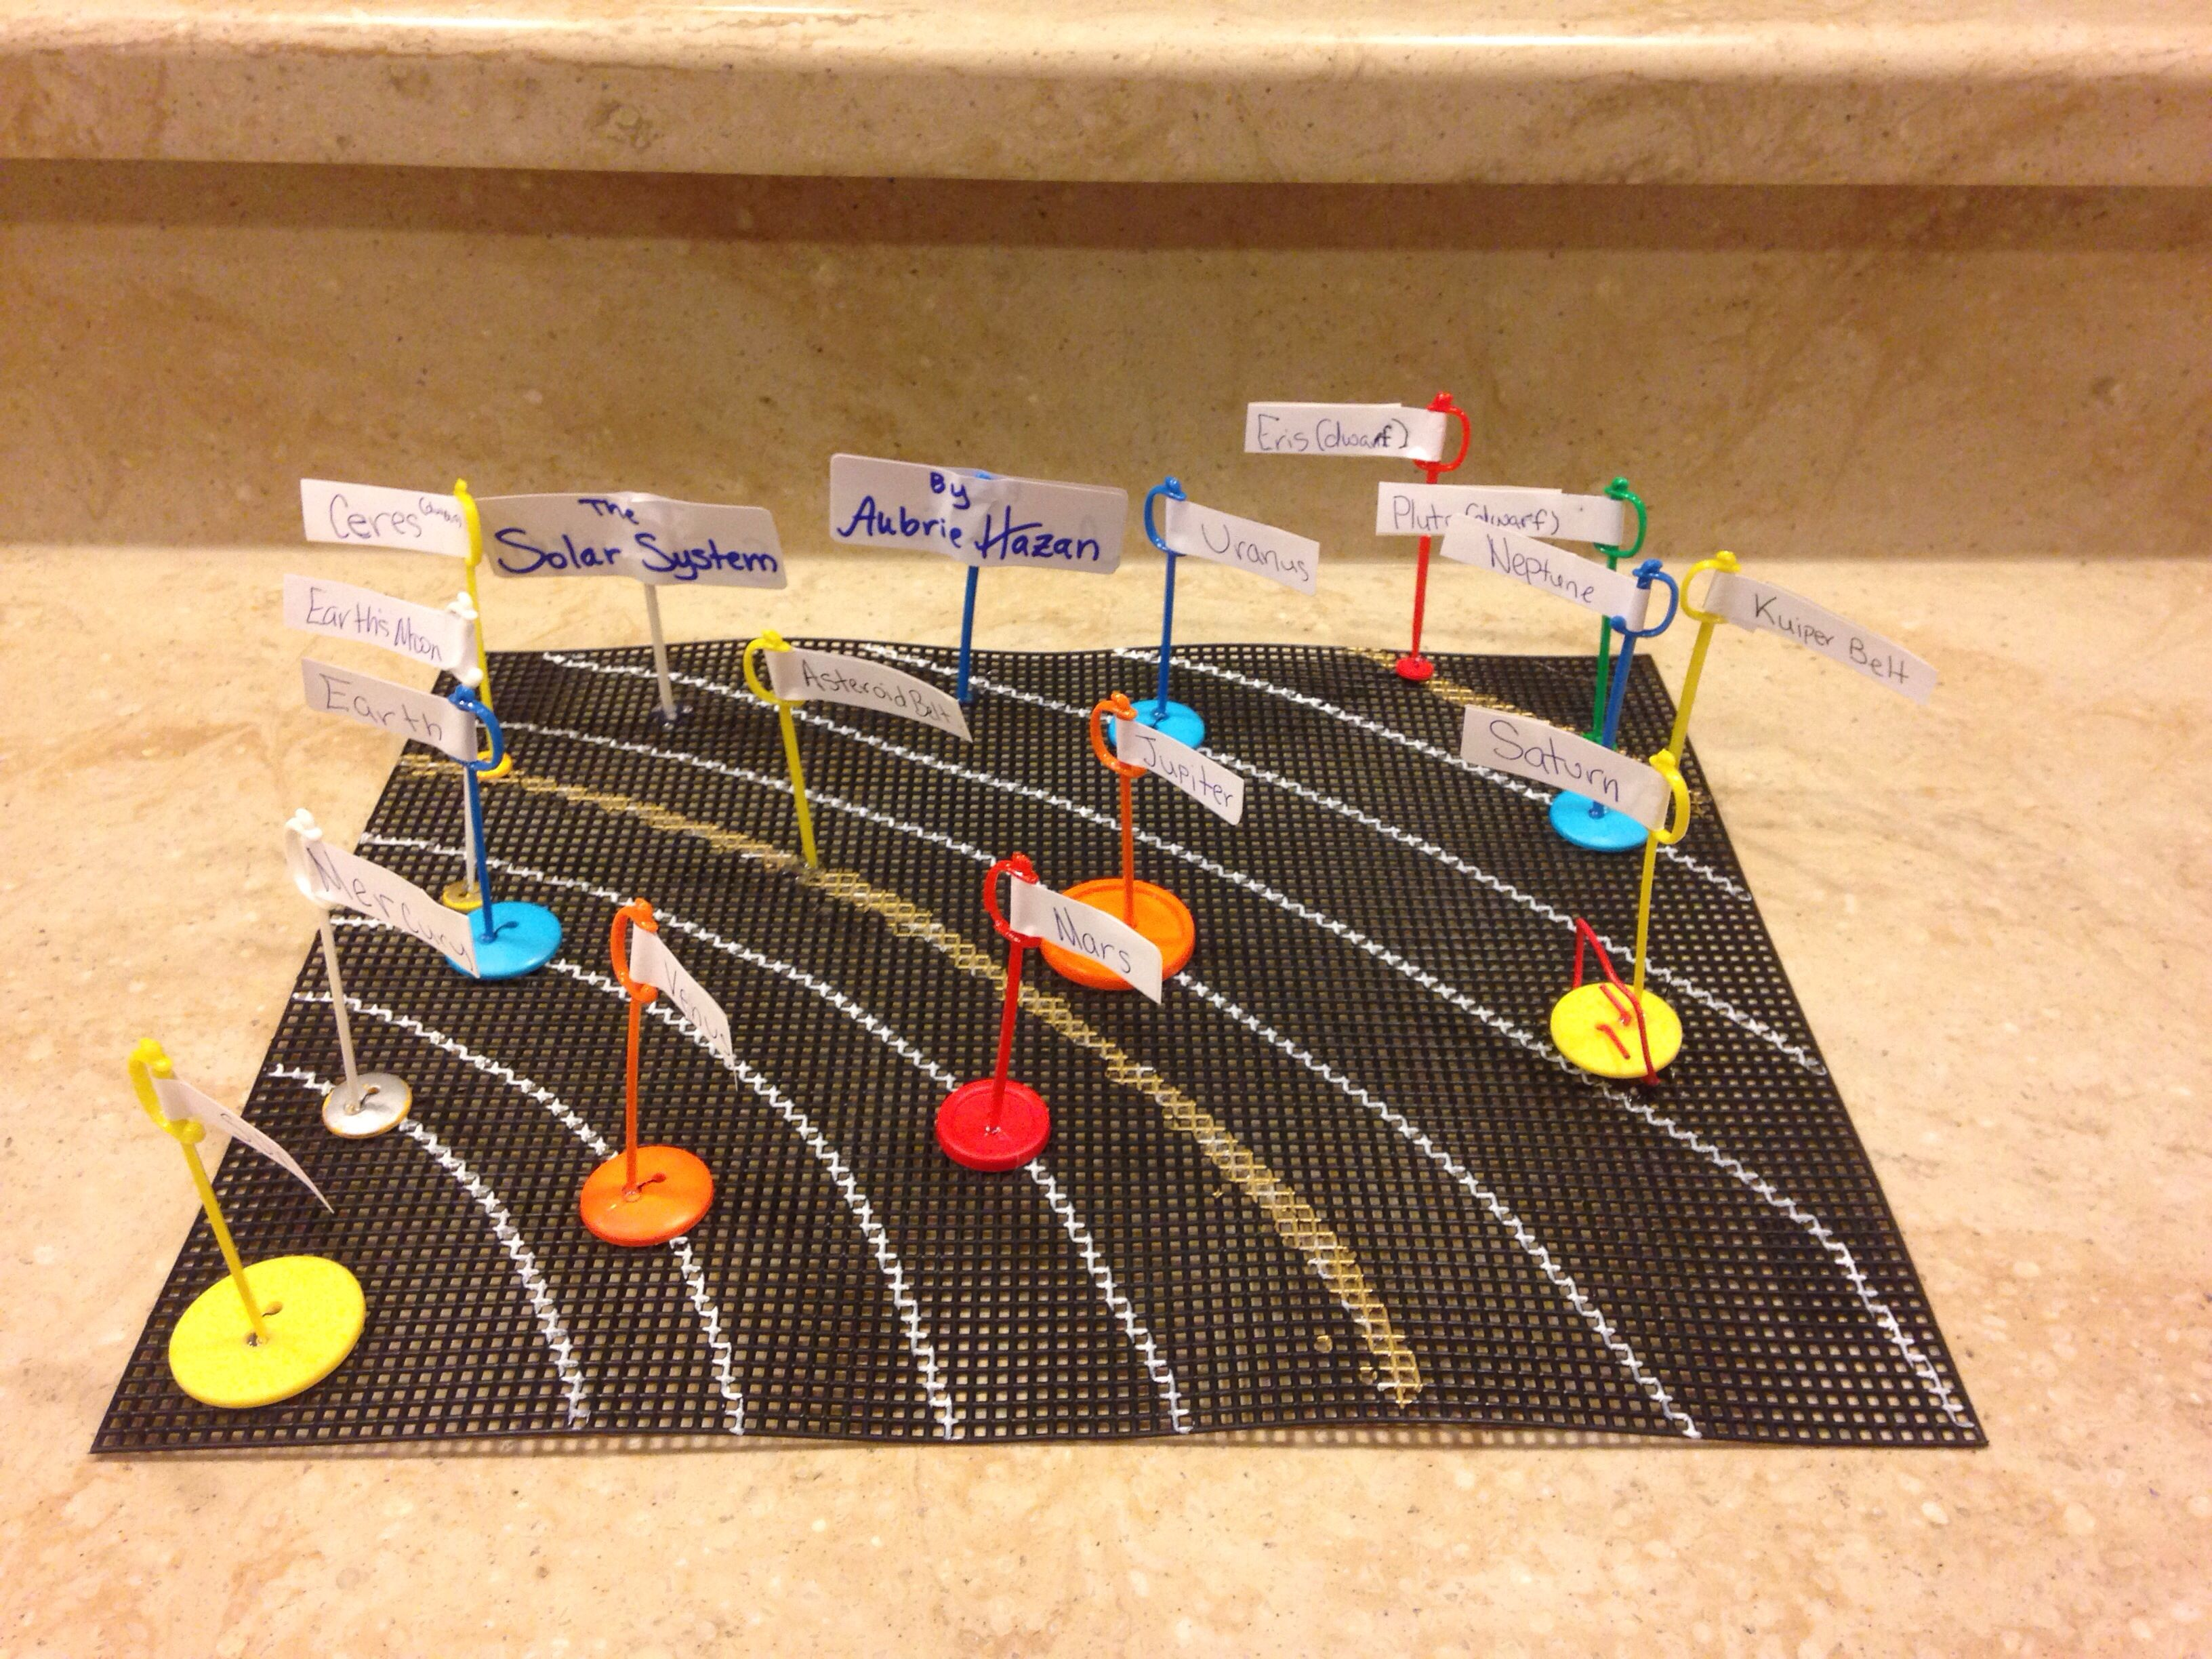 medium resolution of solar system diagram for school project made our of a plastic canvas buttons